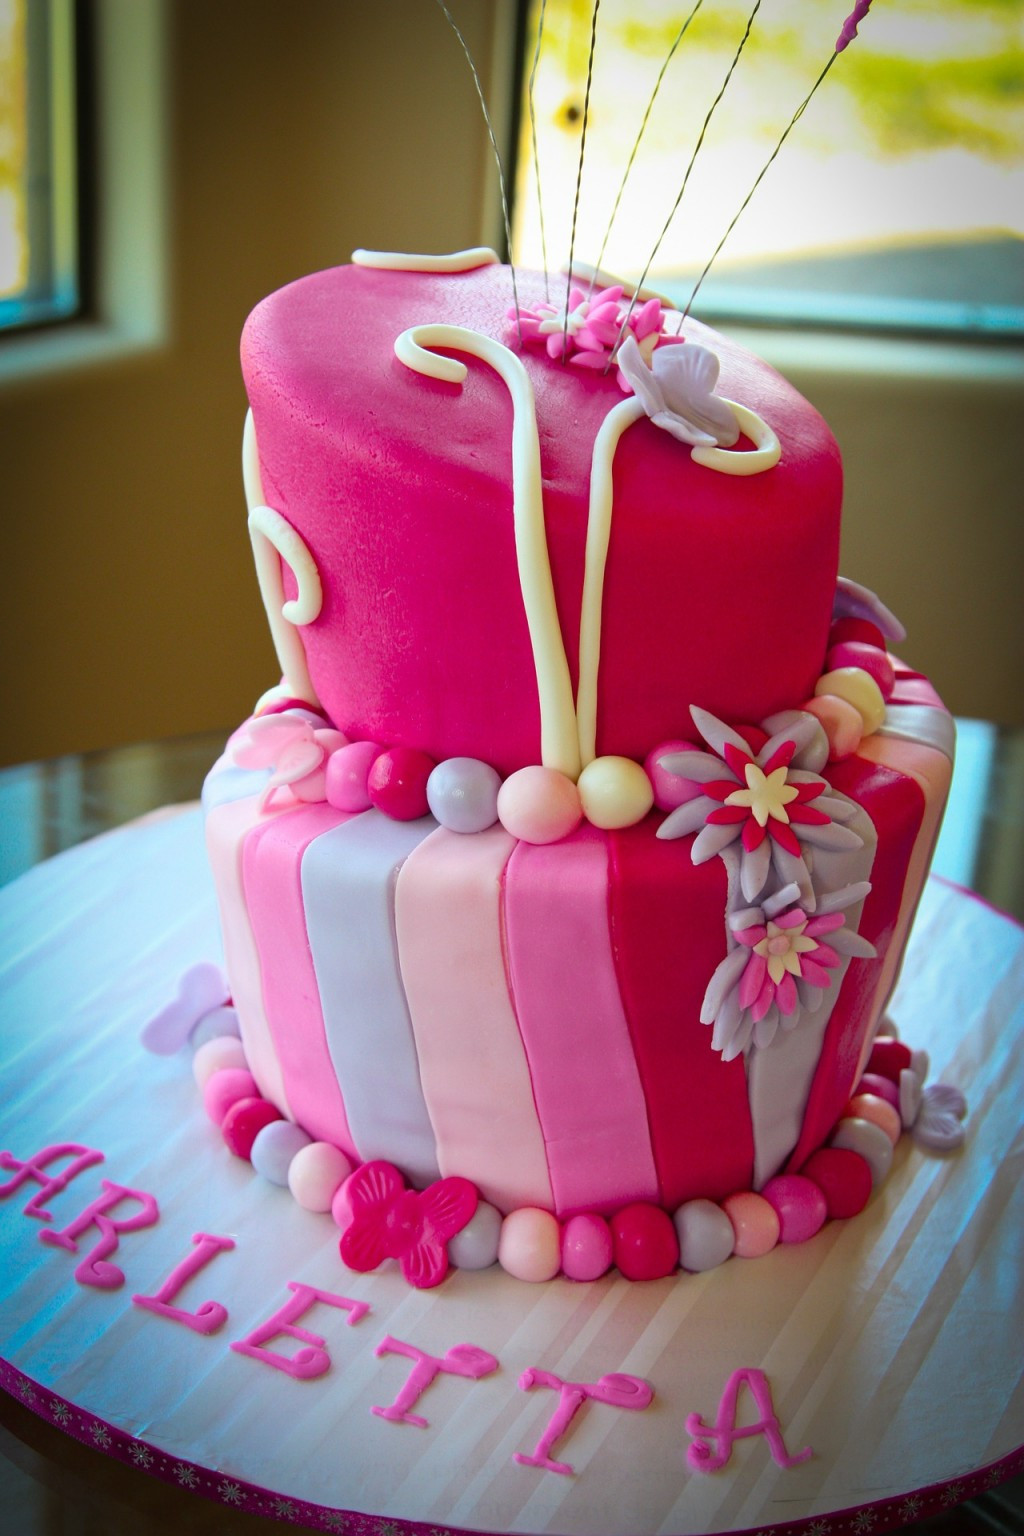 Best ideas about Beautiful Birthday Cake Images . Save or Pin 50 Beautiful Birthday Cake and Ideas for Kids and Now.